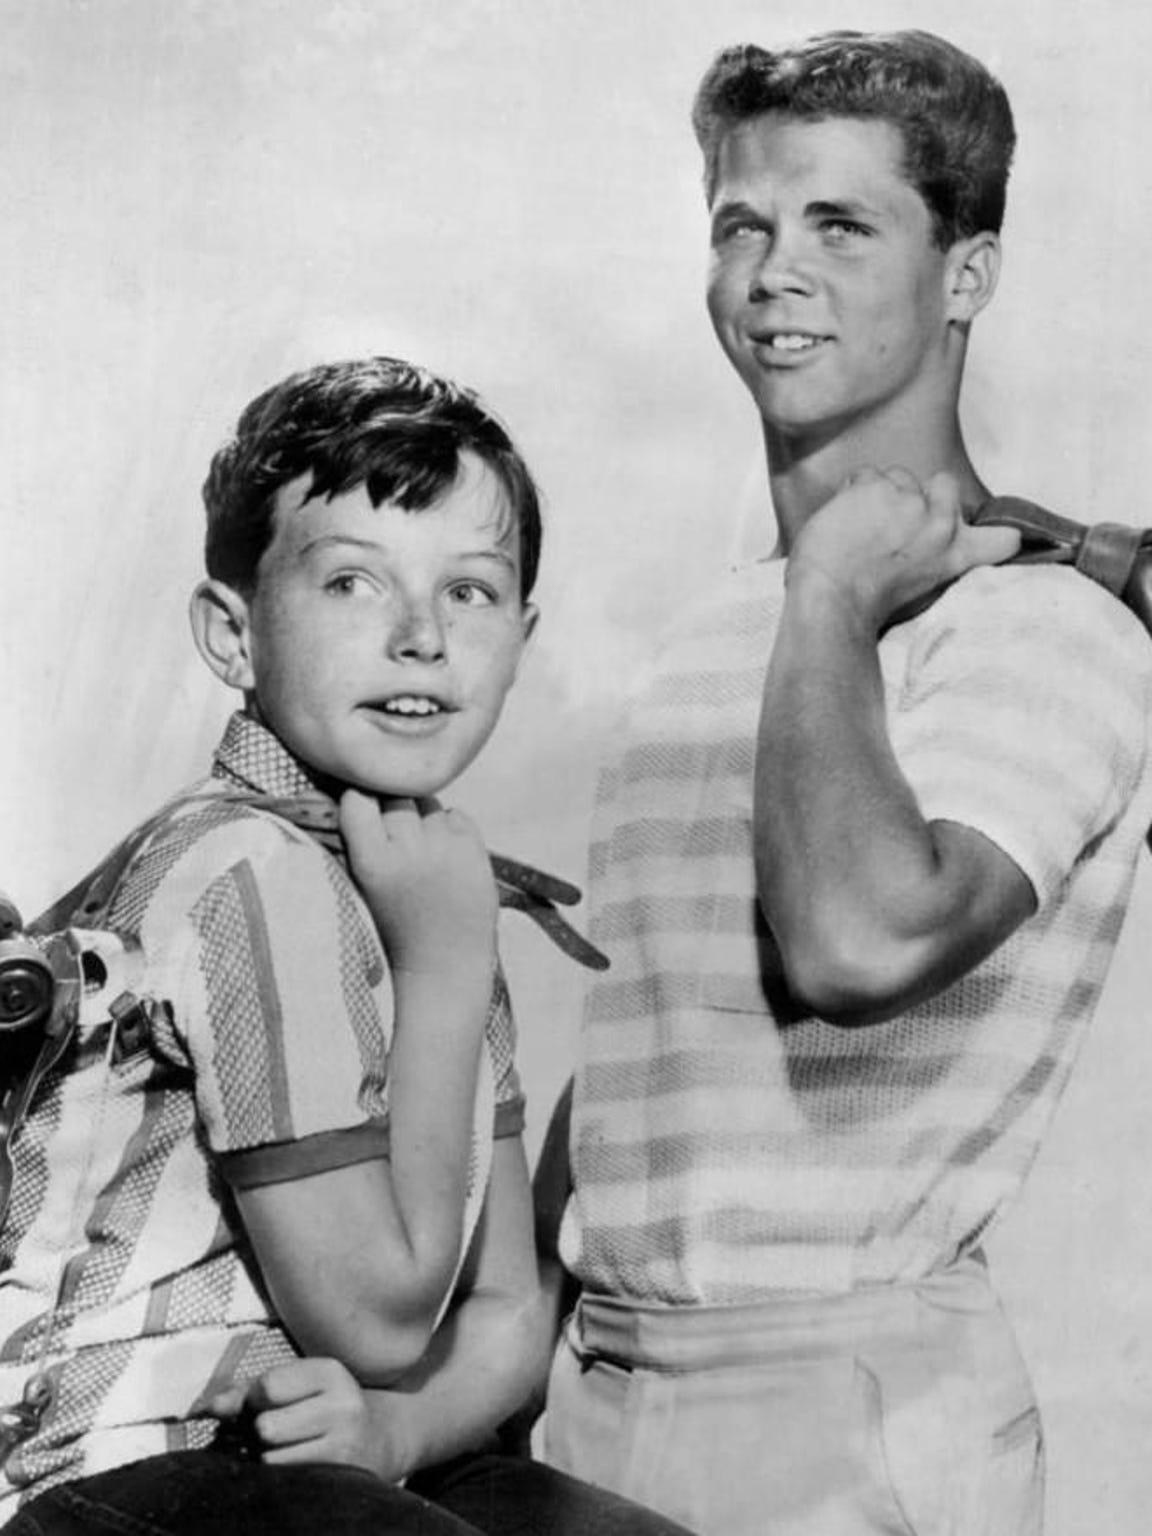 This photo is from Sept. 7, 1961, with Jerry Mathers,